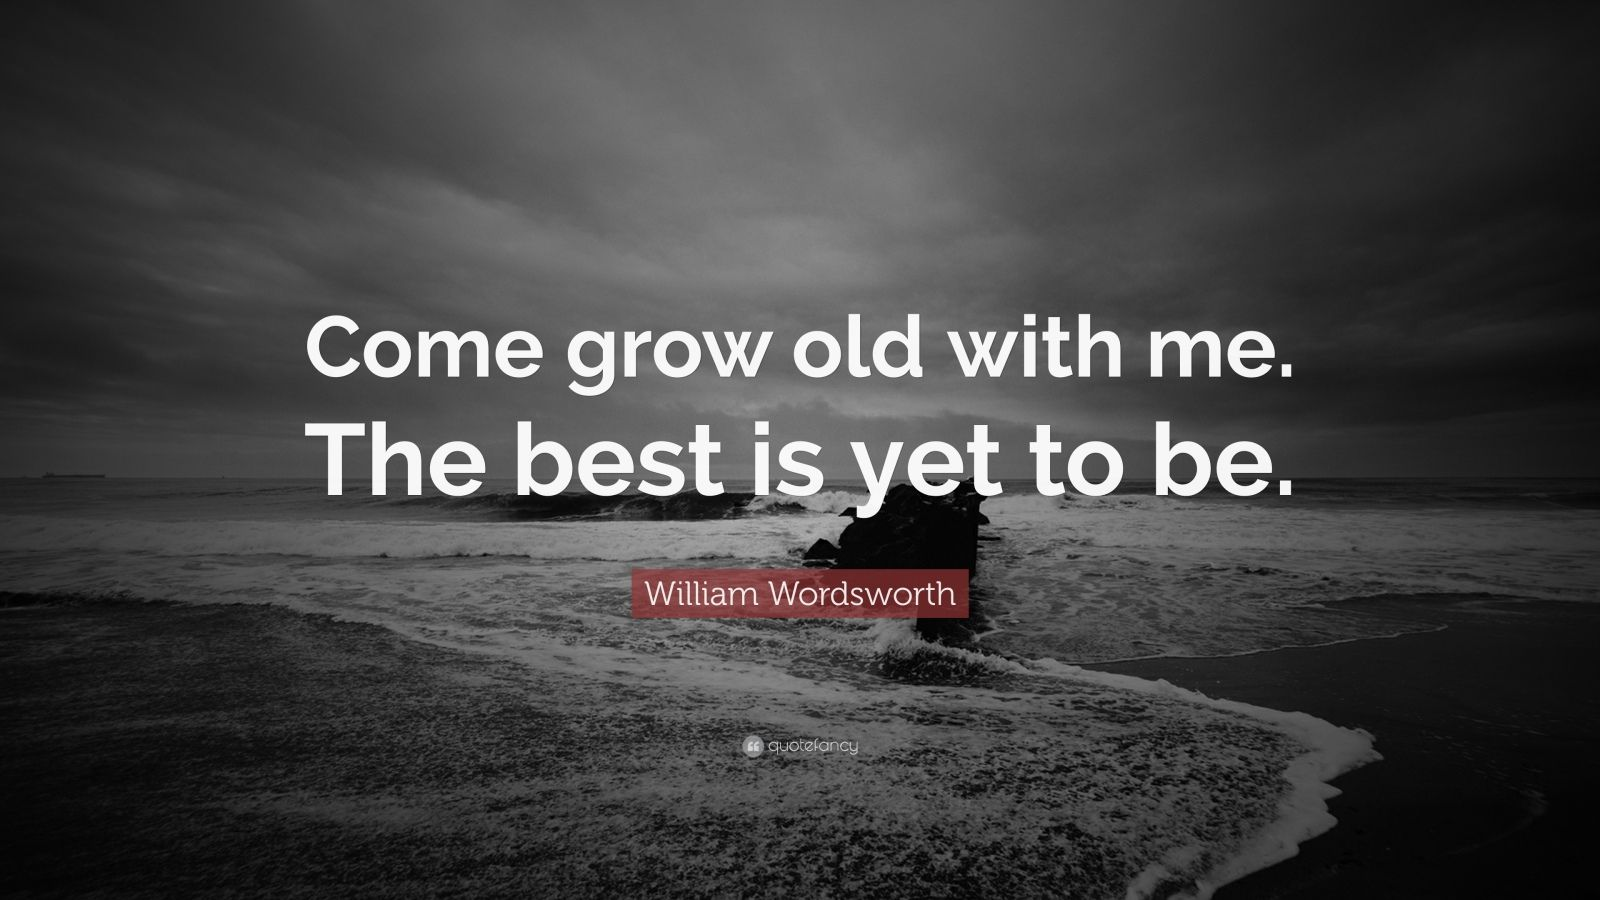 William Wordsworth Quote Come grow old with me The best is yet to be 24 wallpapers